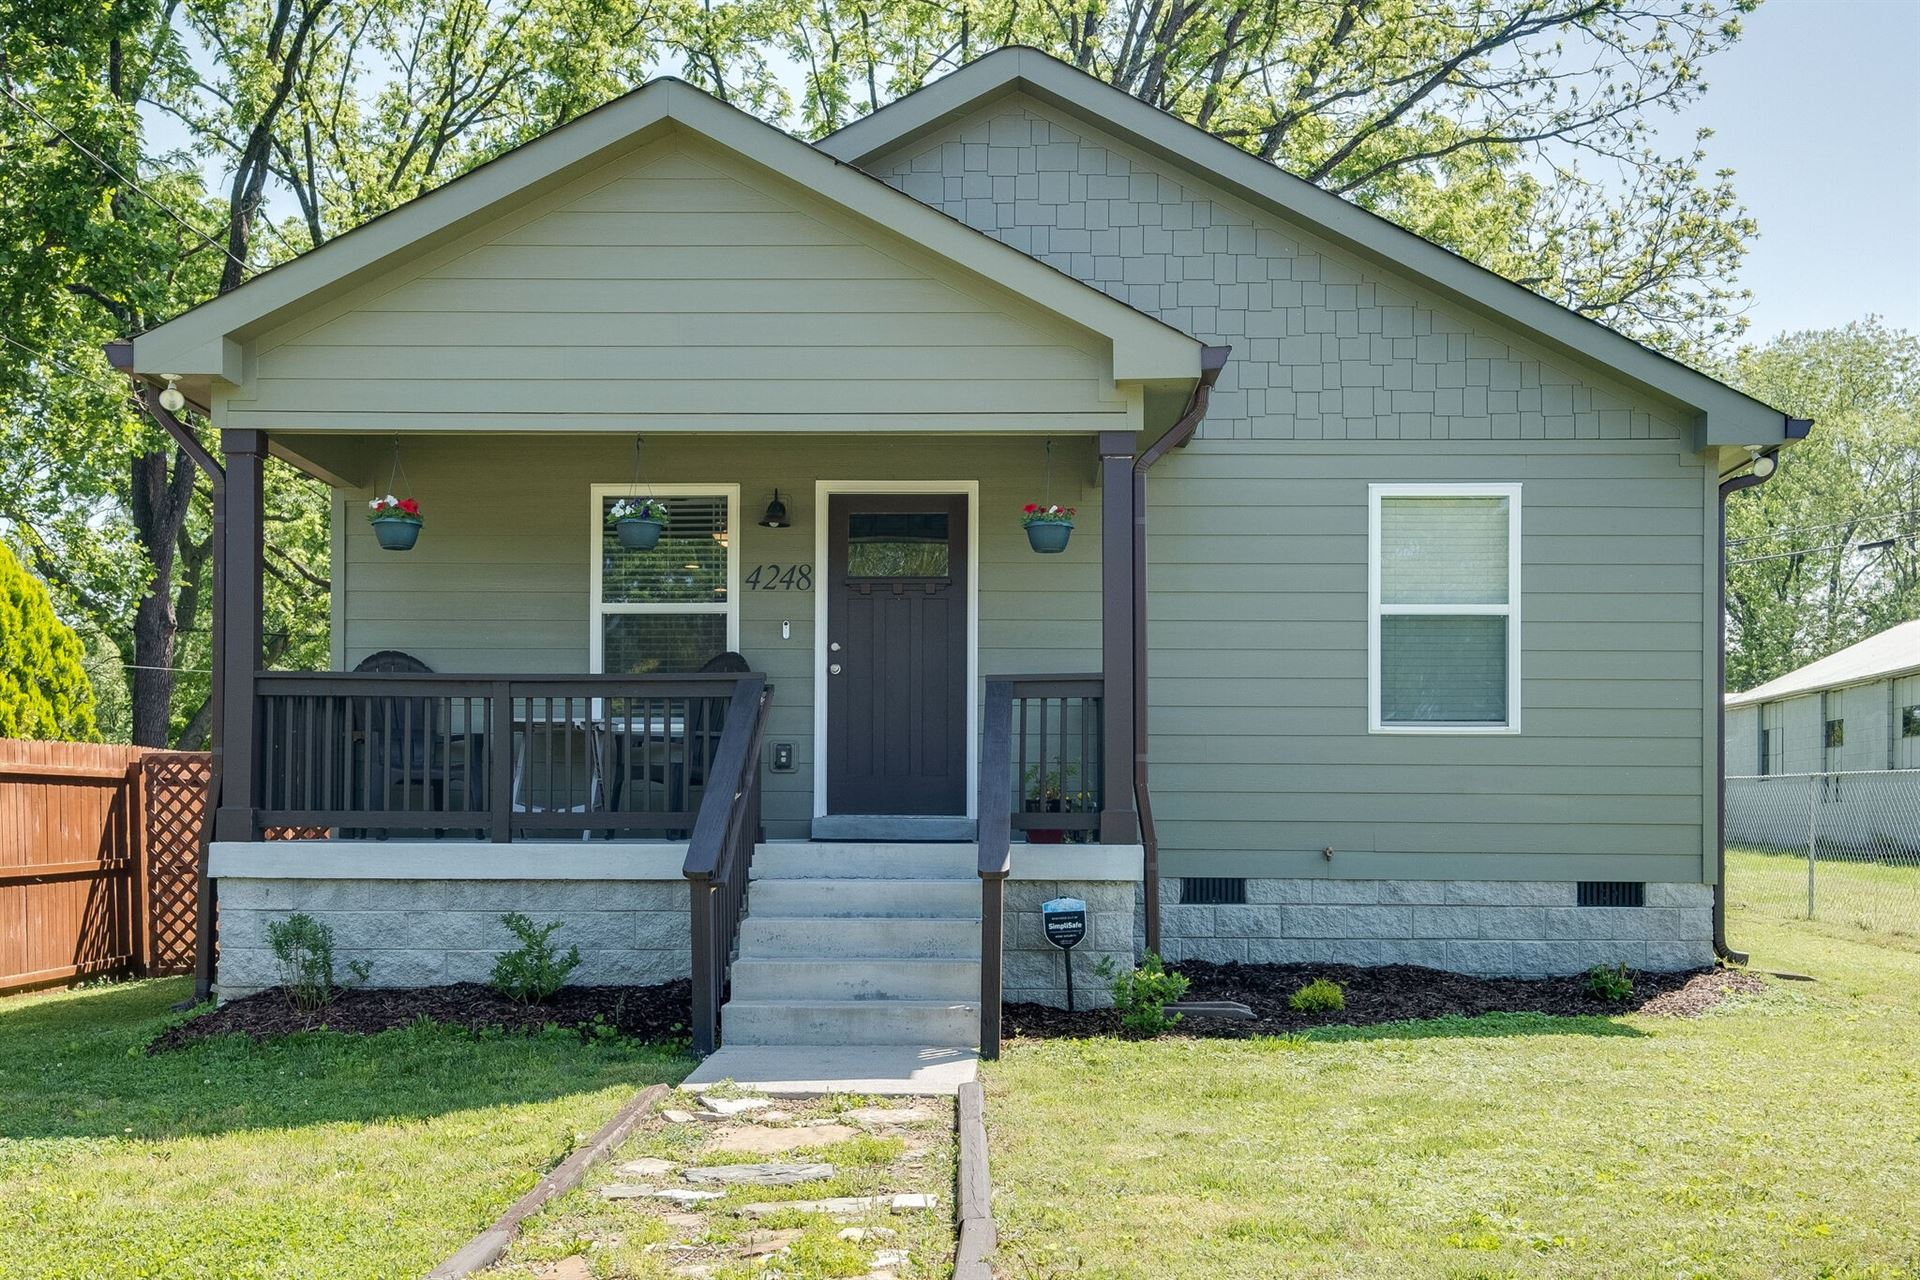 4248 Old Hickory Blvd, Old Hickory, TN 37138 - MLS#: 2252550